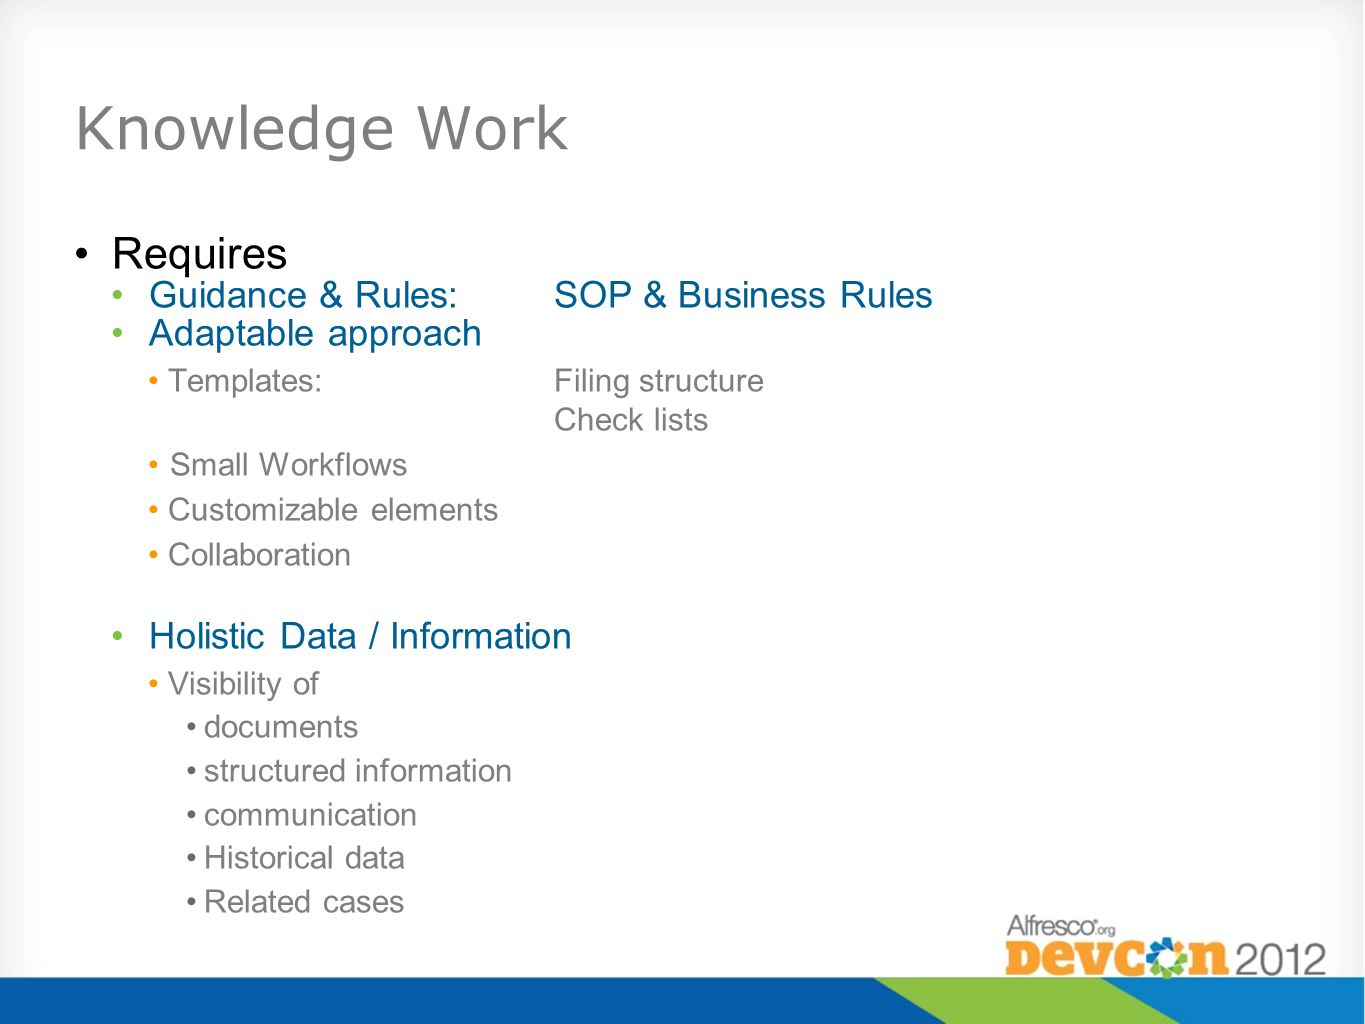 Knowledge Work Requires Guidance & Rules:SOP & Business Rules Adaptable approach Templates:Filing structure Check lists Small Workflows Customizable elements Collaboration Holistic Data / Information Visibility of documents structured information communication Historical data Related cases